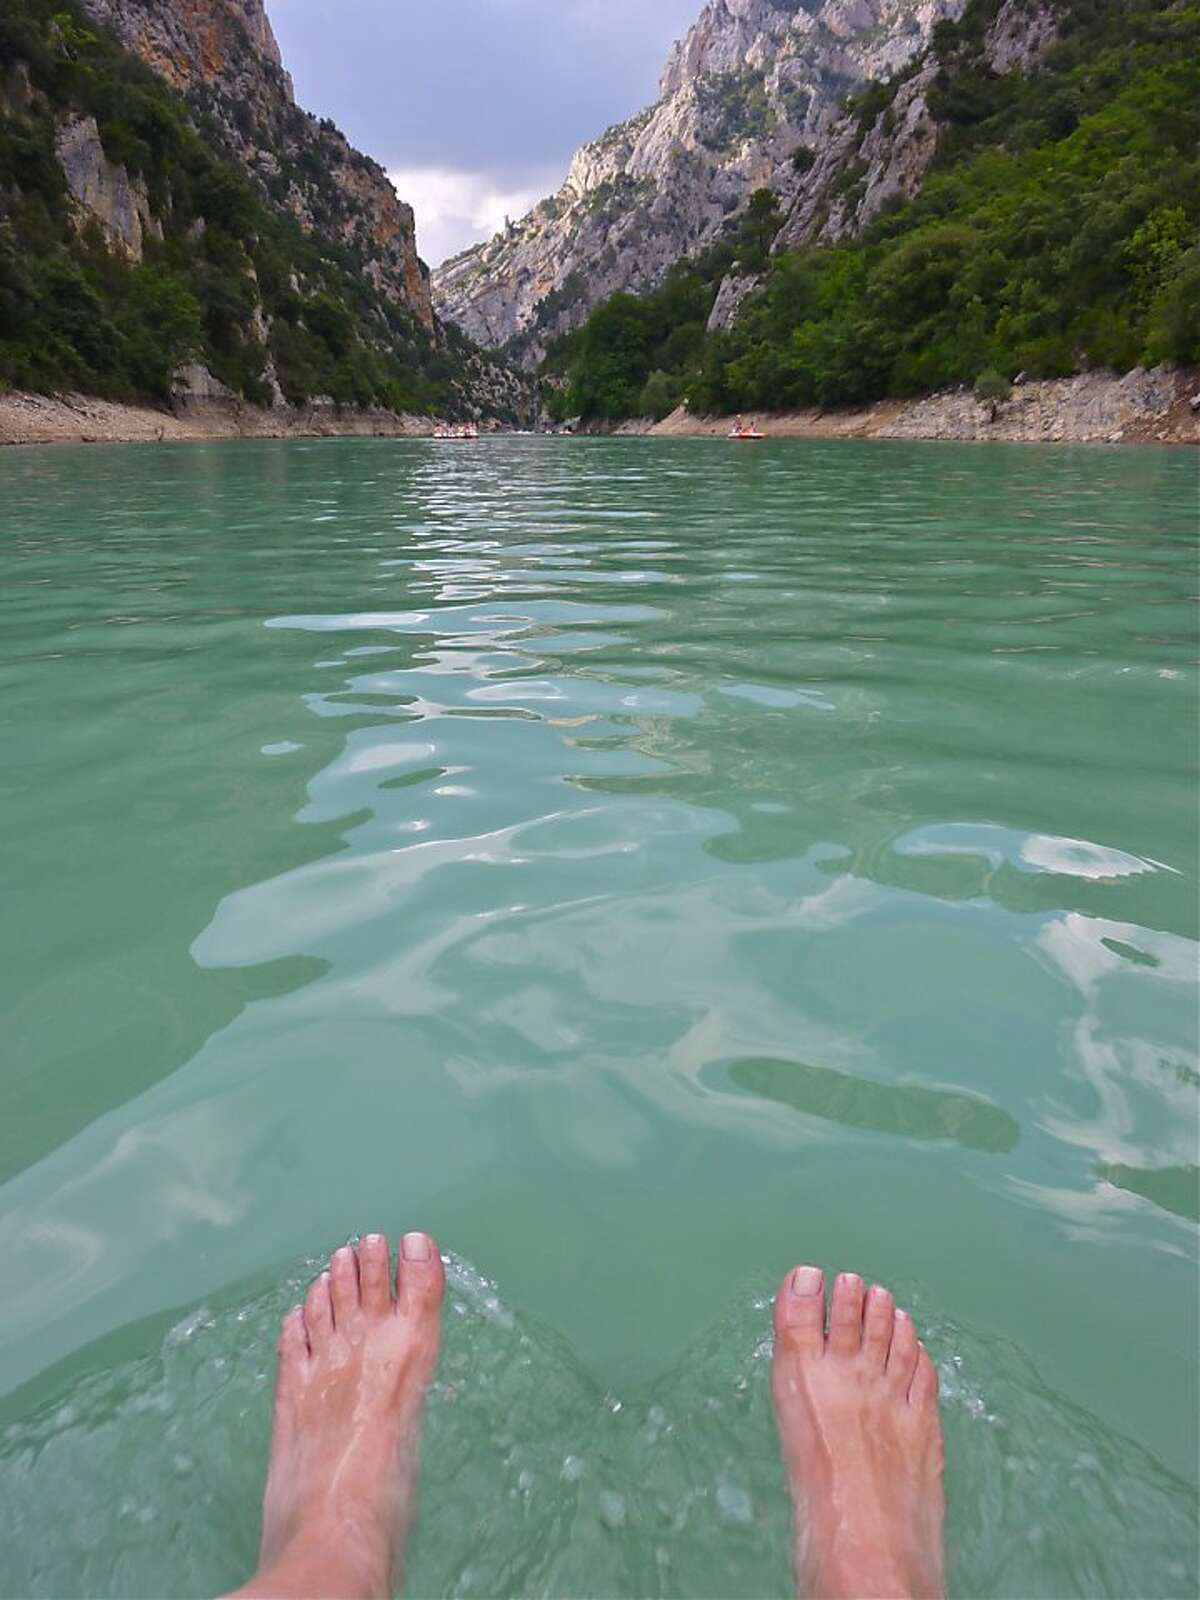 Pedalboating down the Verdon River